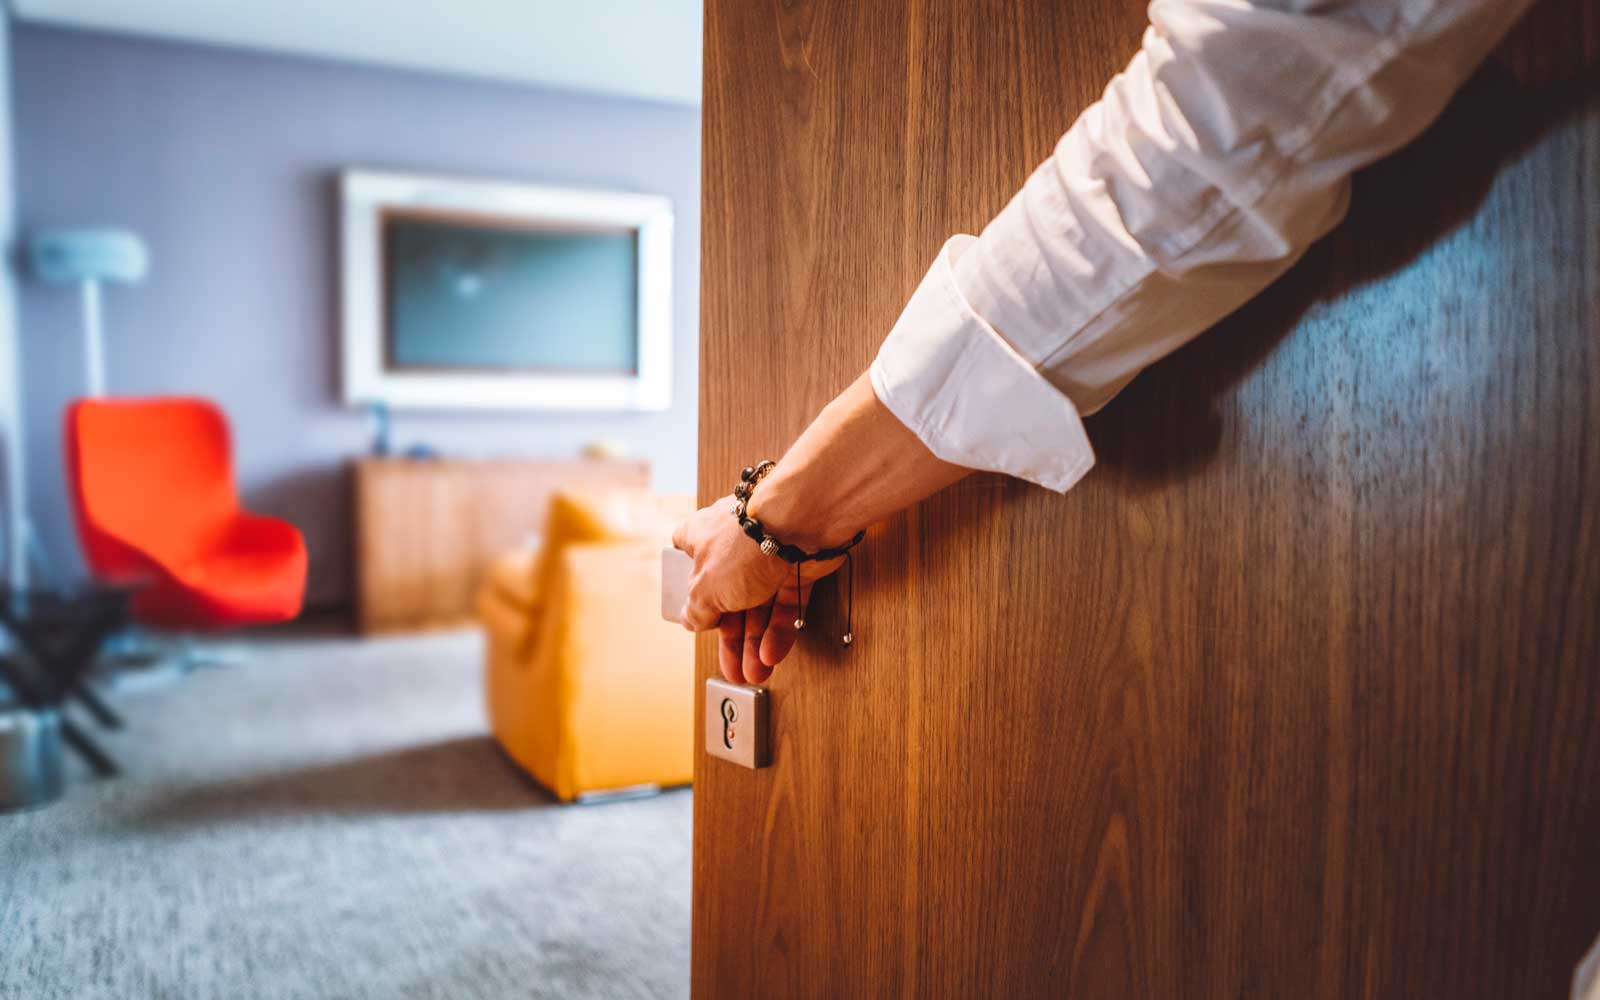 There's a Simple Trick to Shutting Your Hotel Room Door Quietly